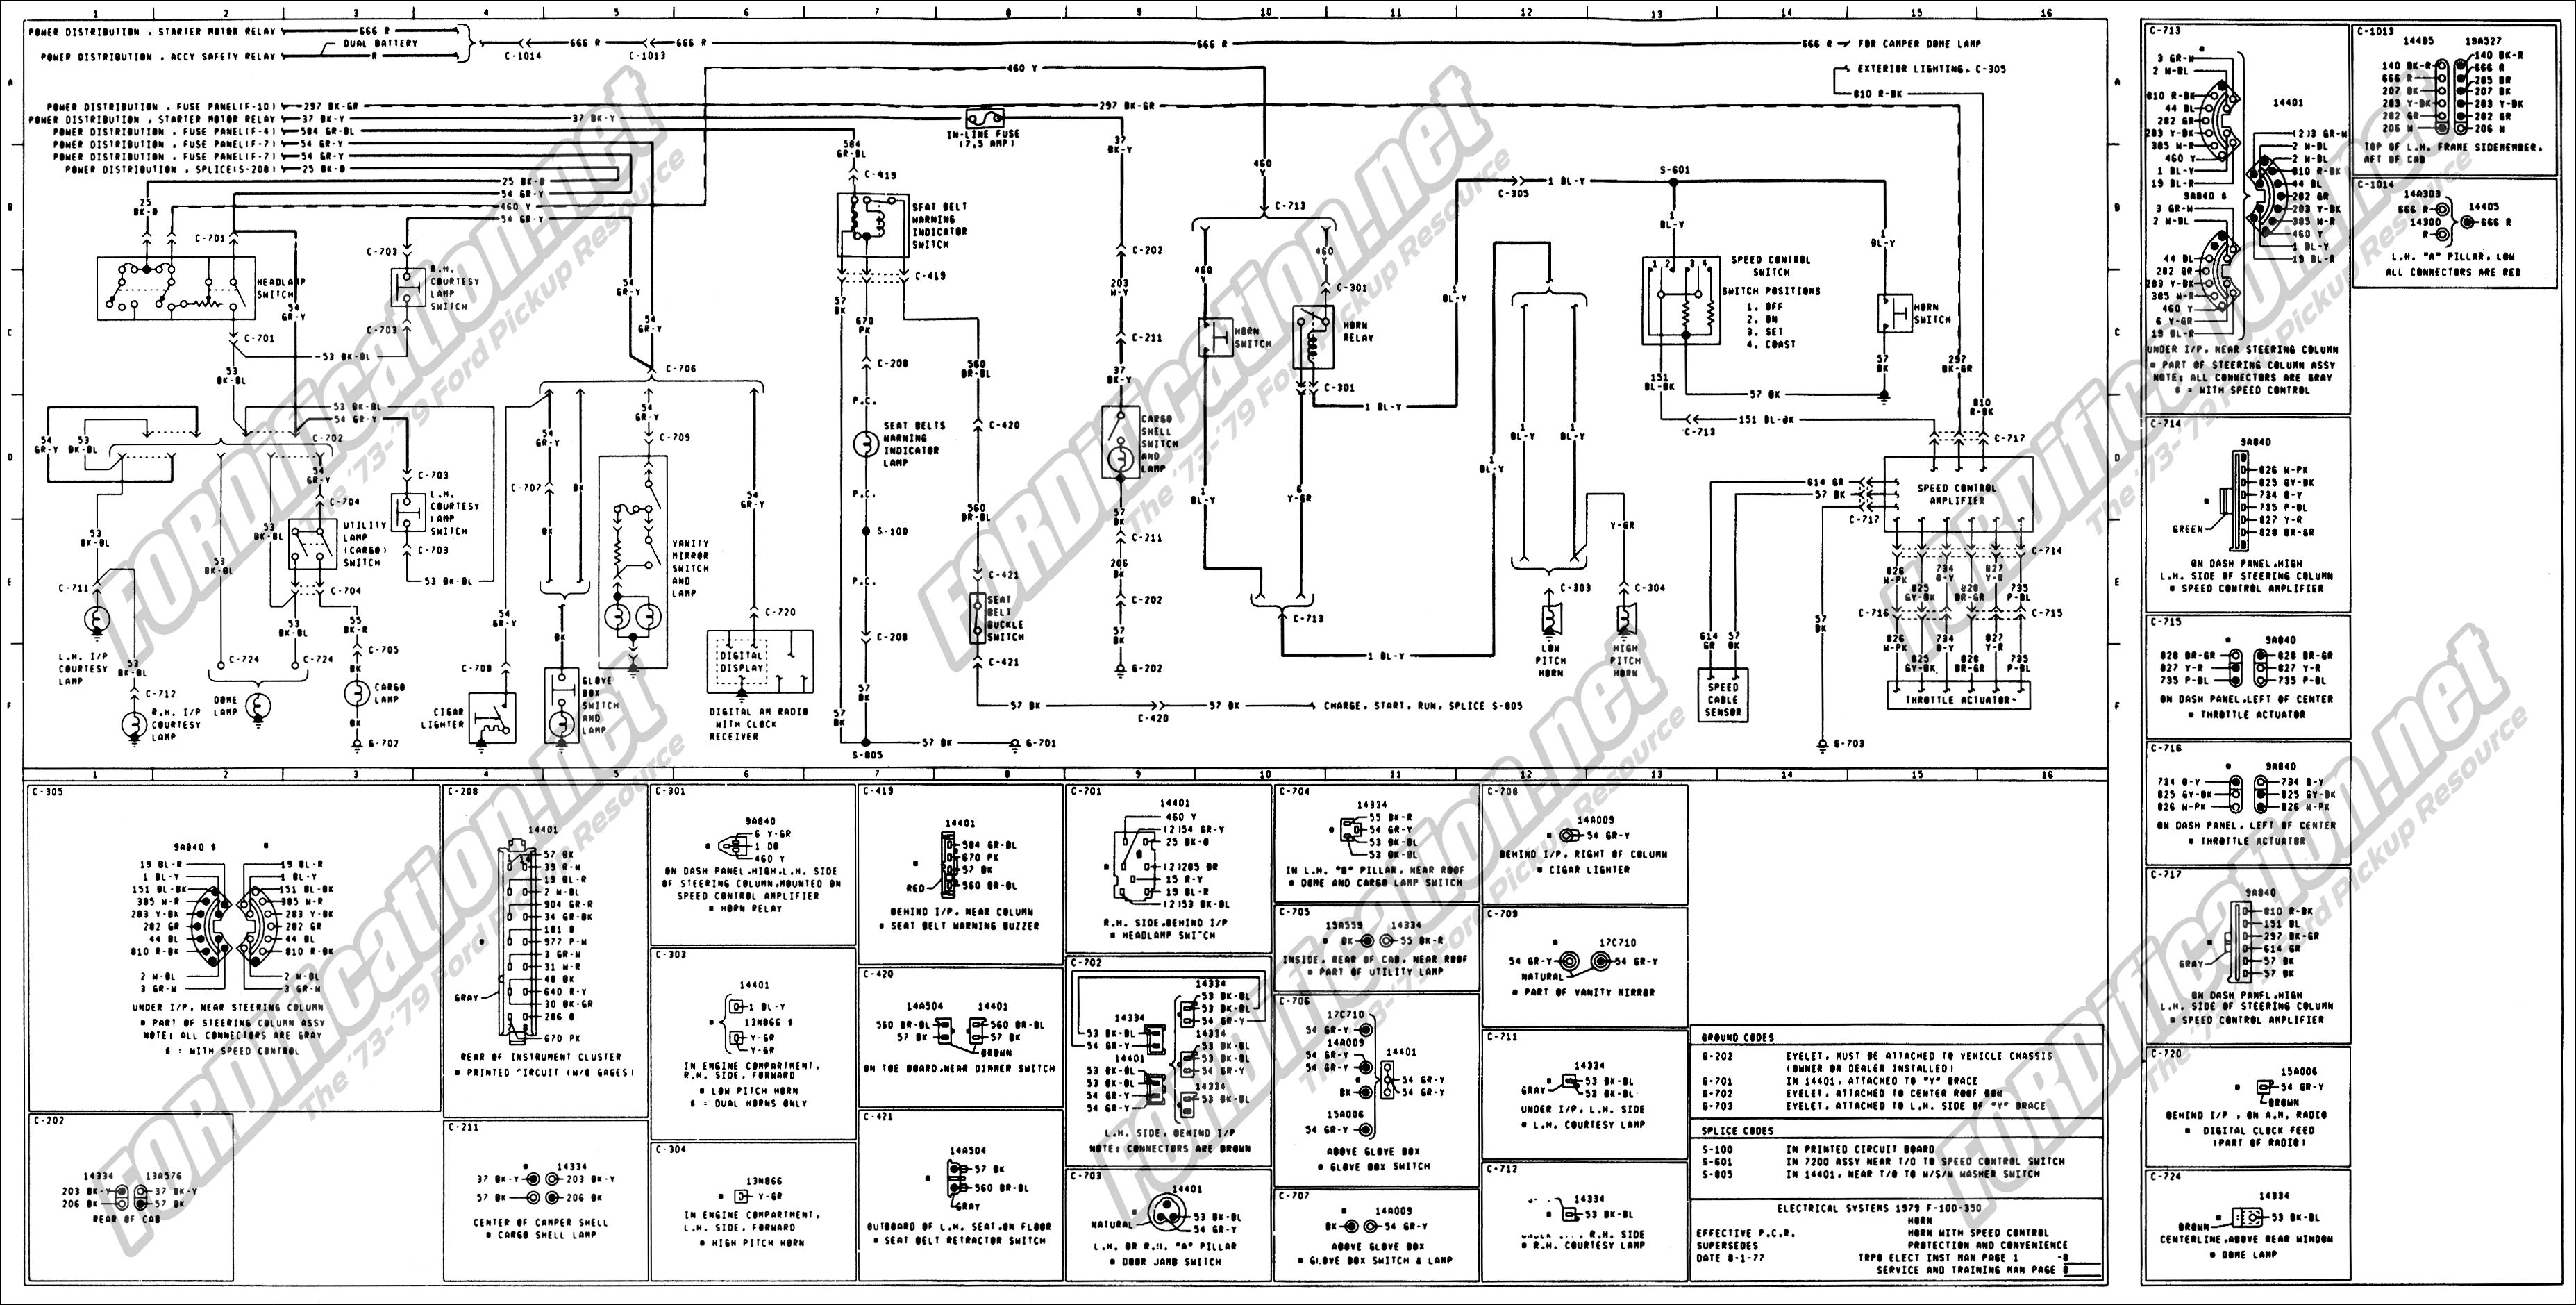 wiring_79master_8of9 1973 1979 ford truck wiring diagrams & schematics fordification net 1971 ford f250 wiring diagram at gsmportal.co